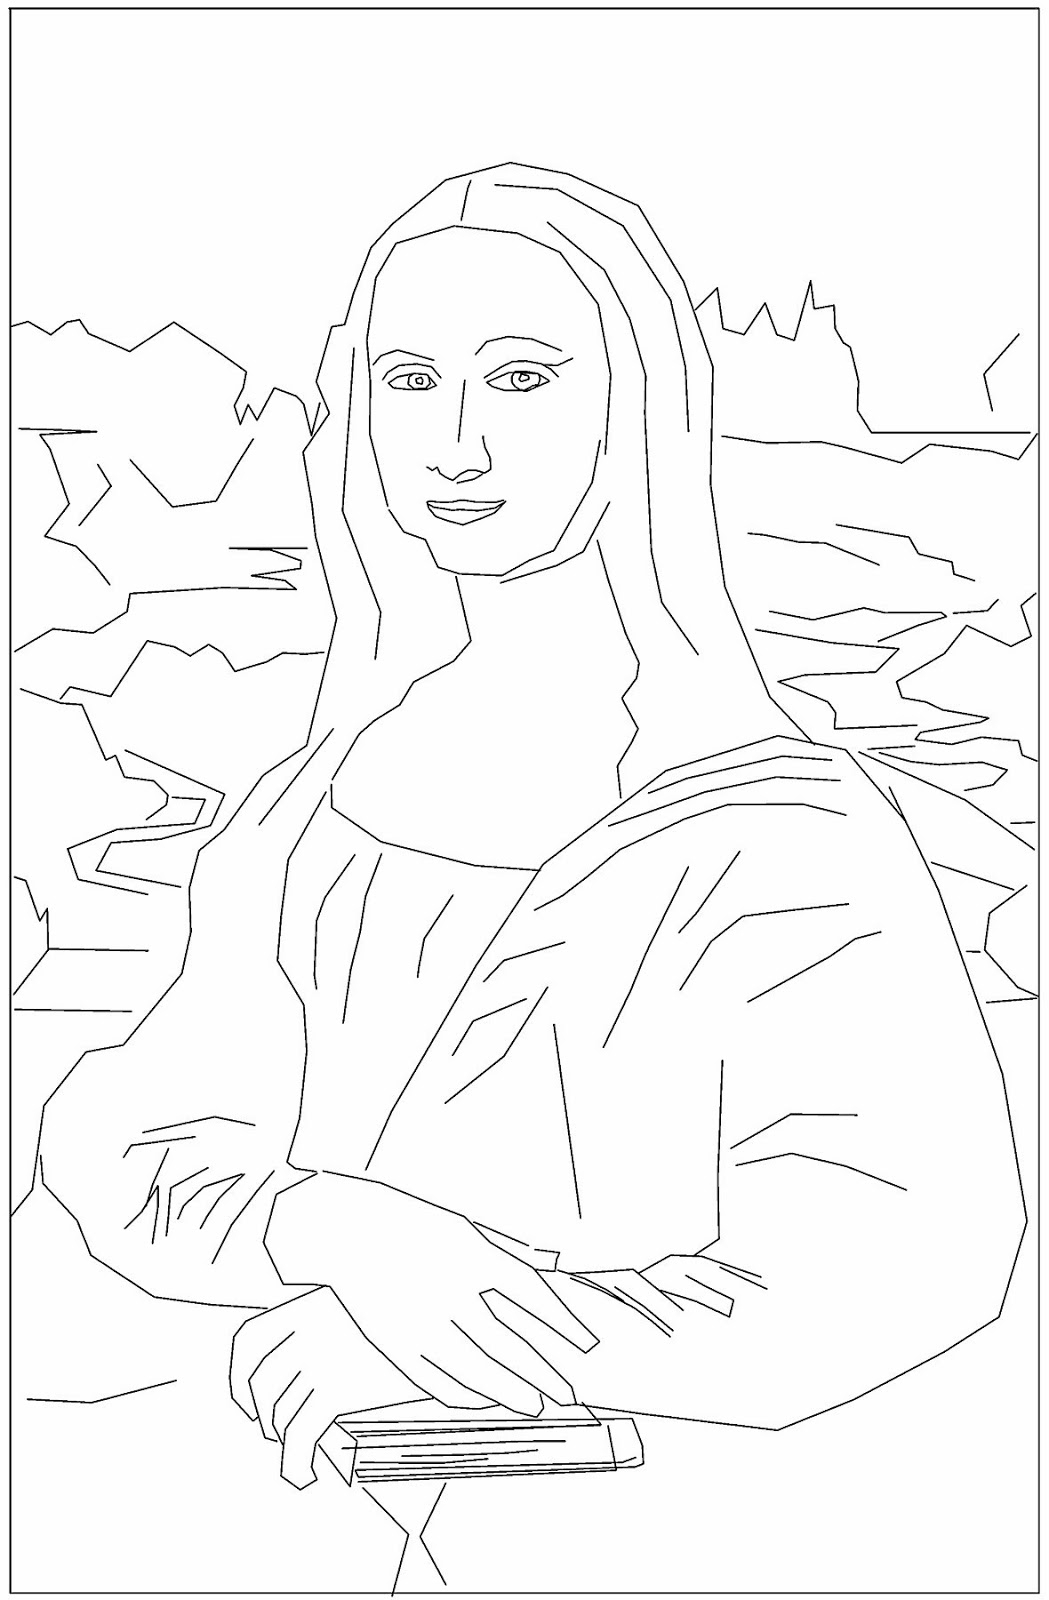 23 Mona Lisa Coloring Page Pictures   FREE COLORING PAGES - Part 3